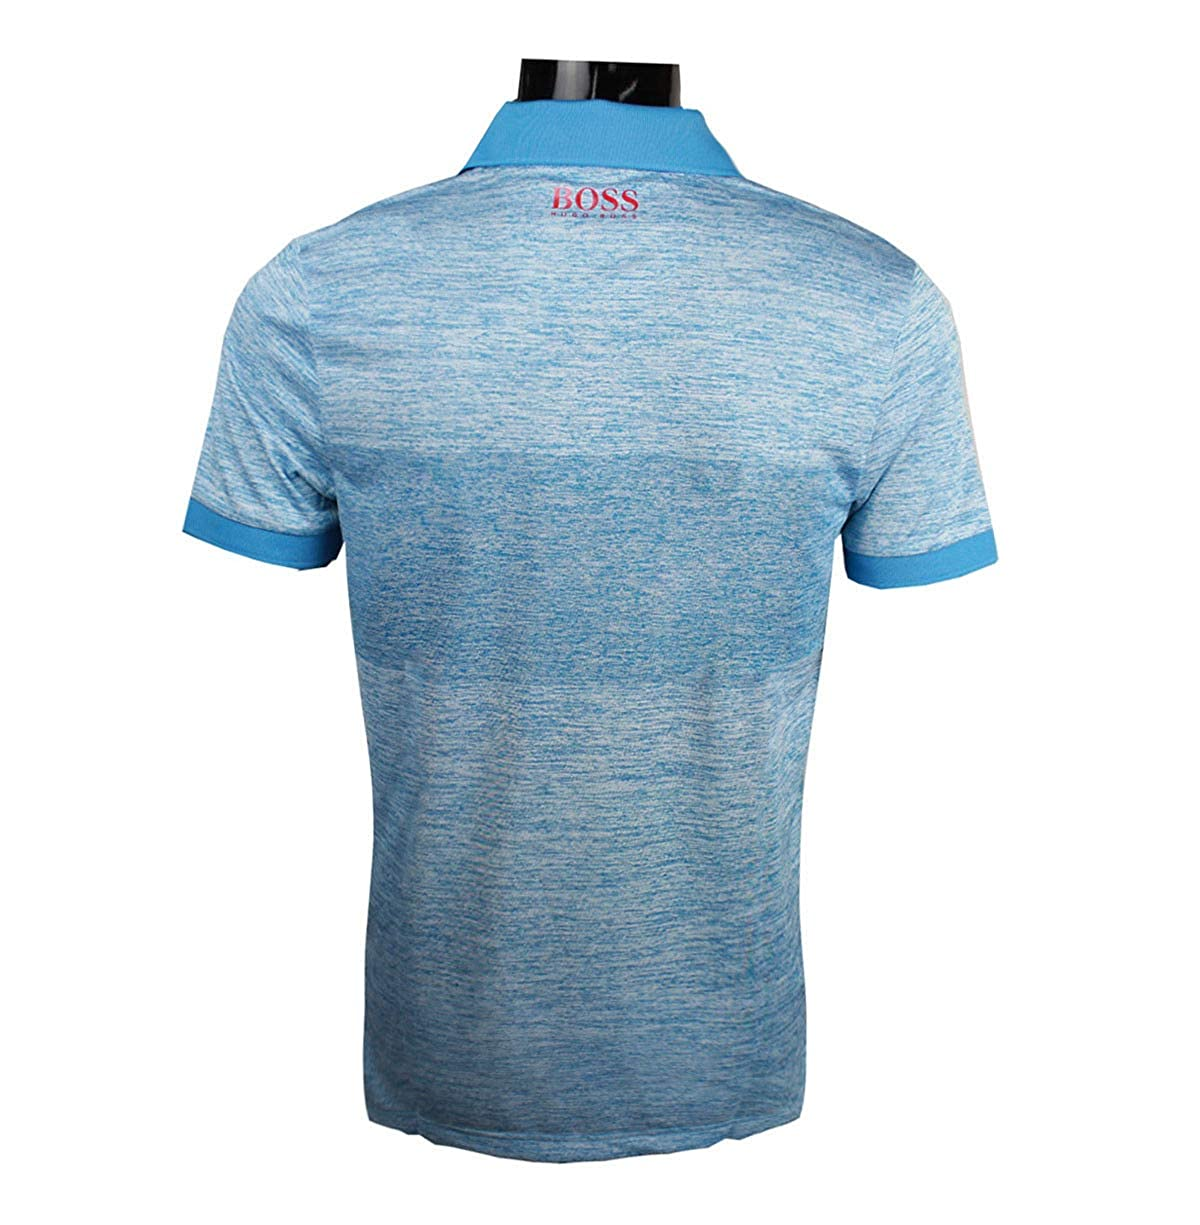 77a39eda7 Amazon.com: Hugo Boss Mens Polo Golf Shirt Paddy Pro 2 Open Blue 50379281  (Small): Clothing